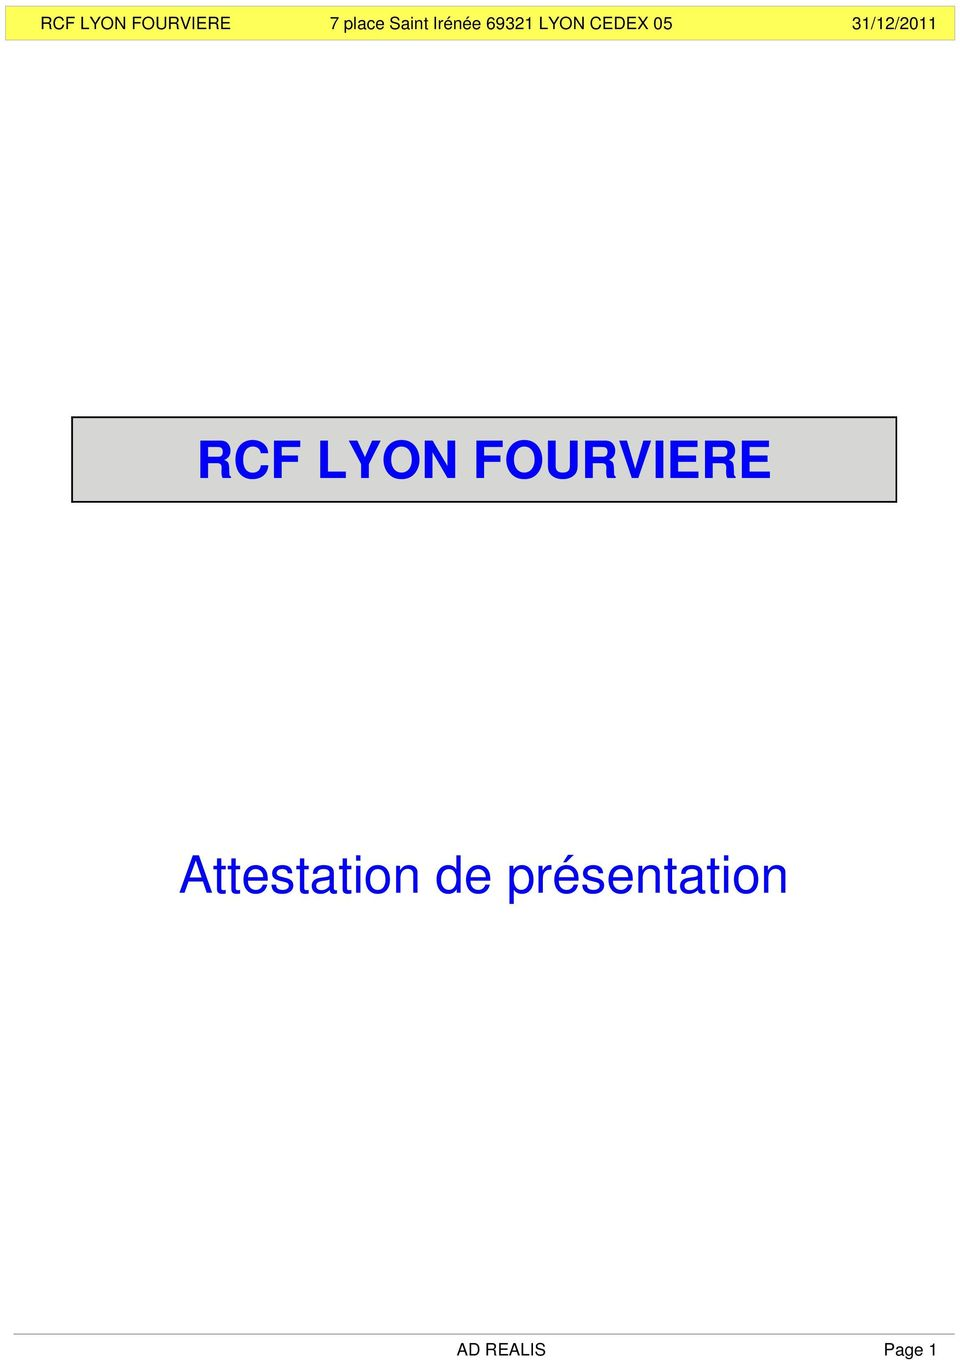 Attestation de